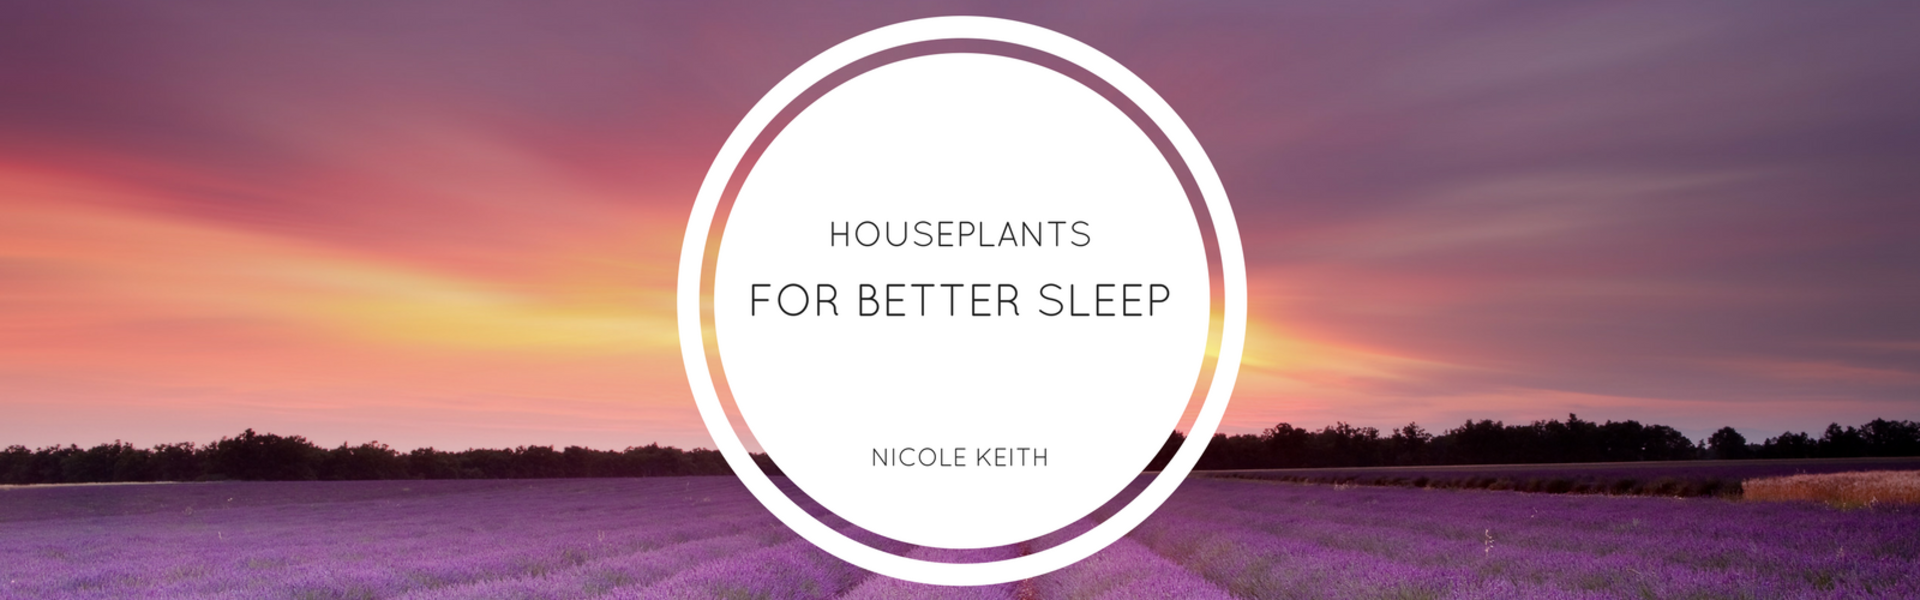 Houseplants for Better Sleep